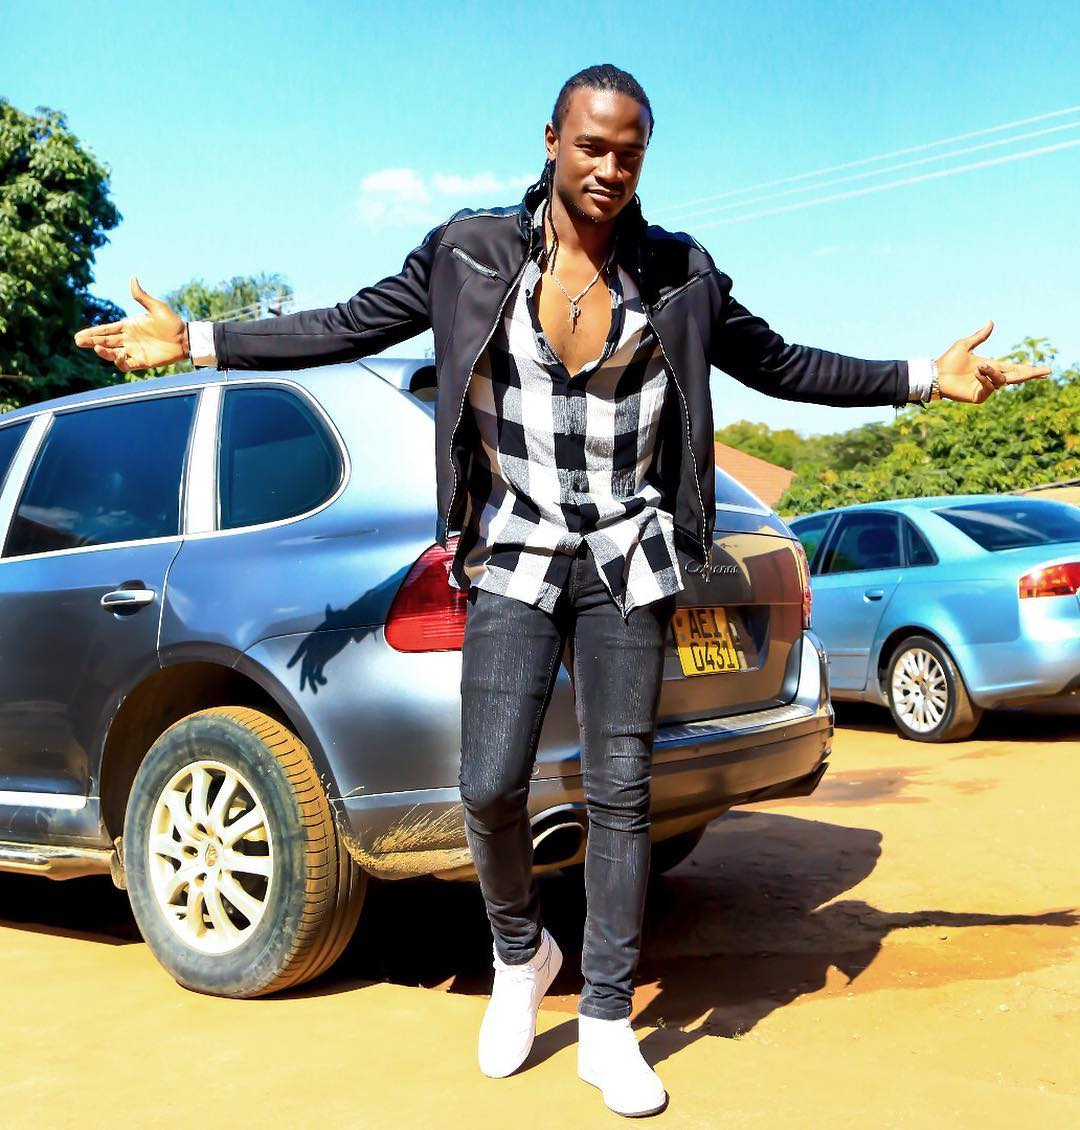 Jah Prayzah makes people dance